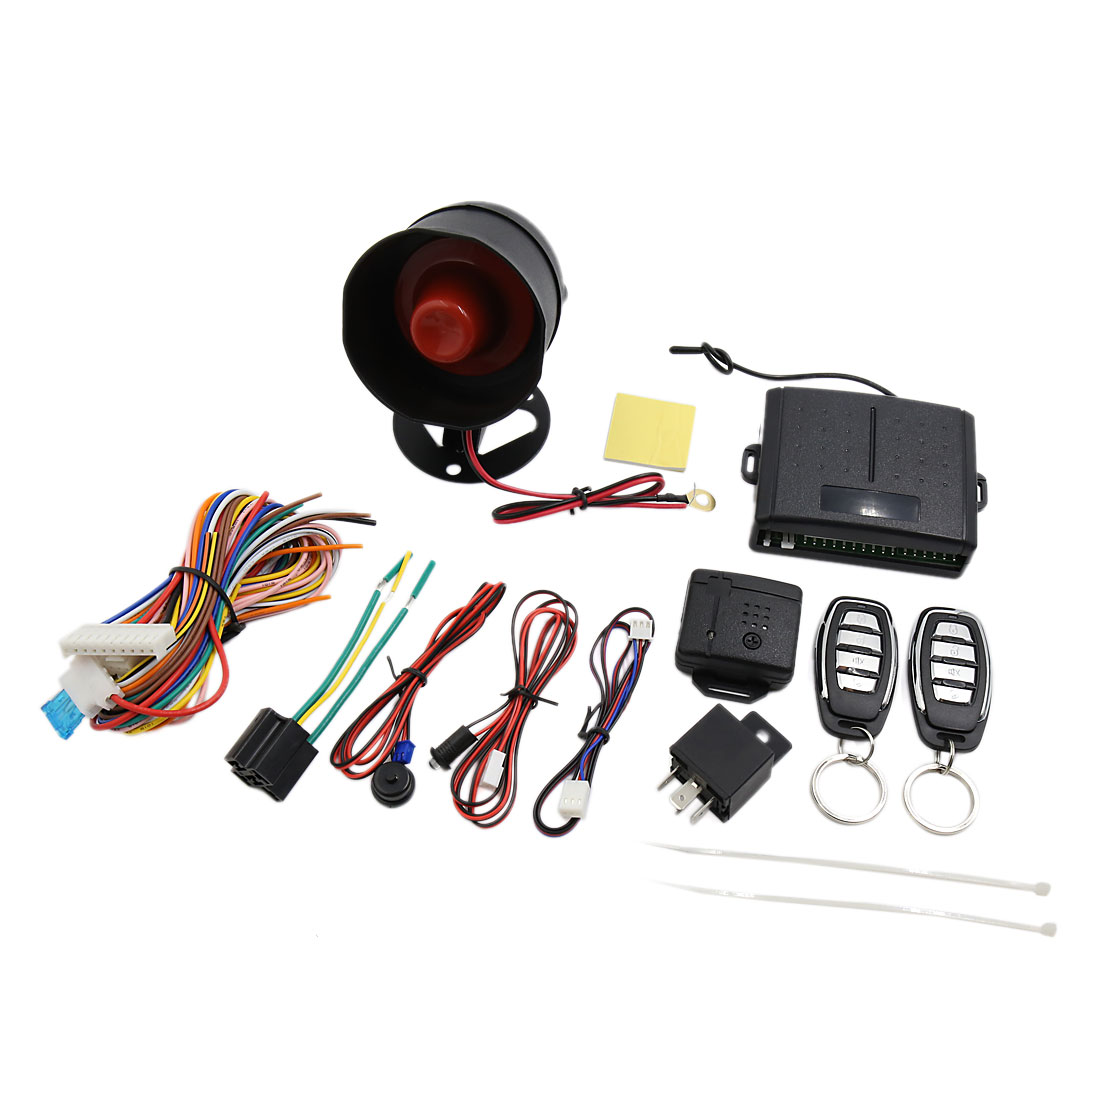 Car Alarm Security System Manual Reset Button Function Burglar Alarm Protection